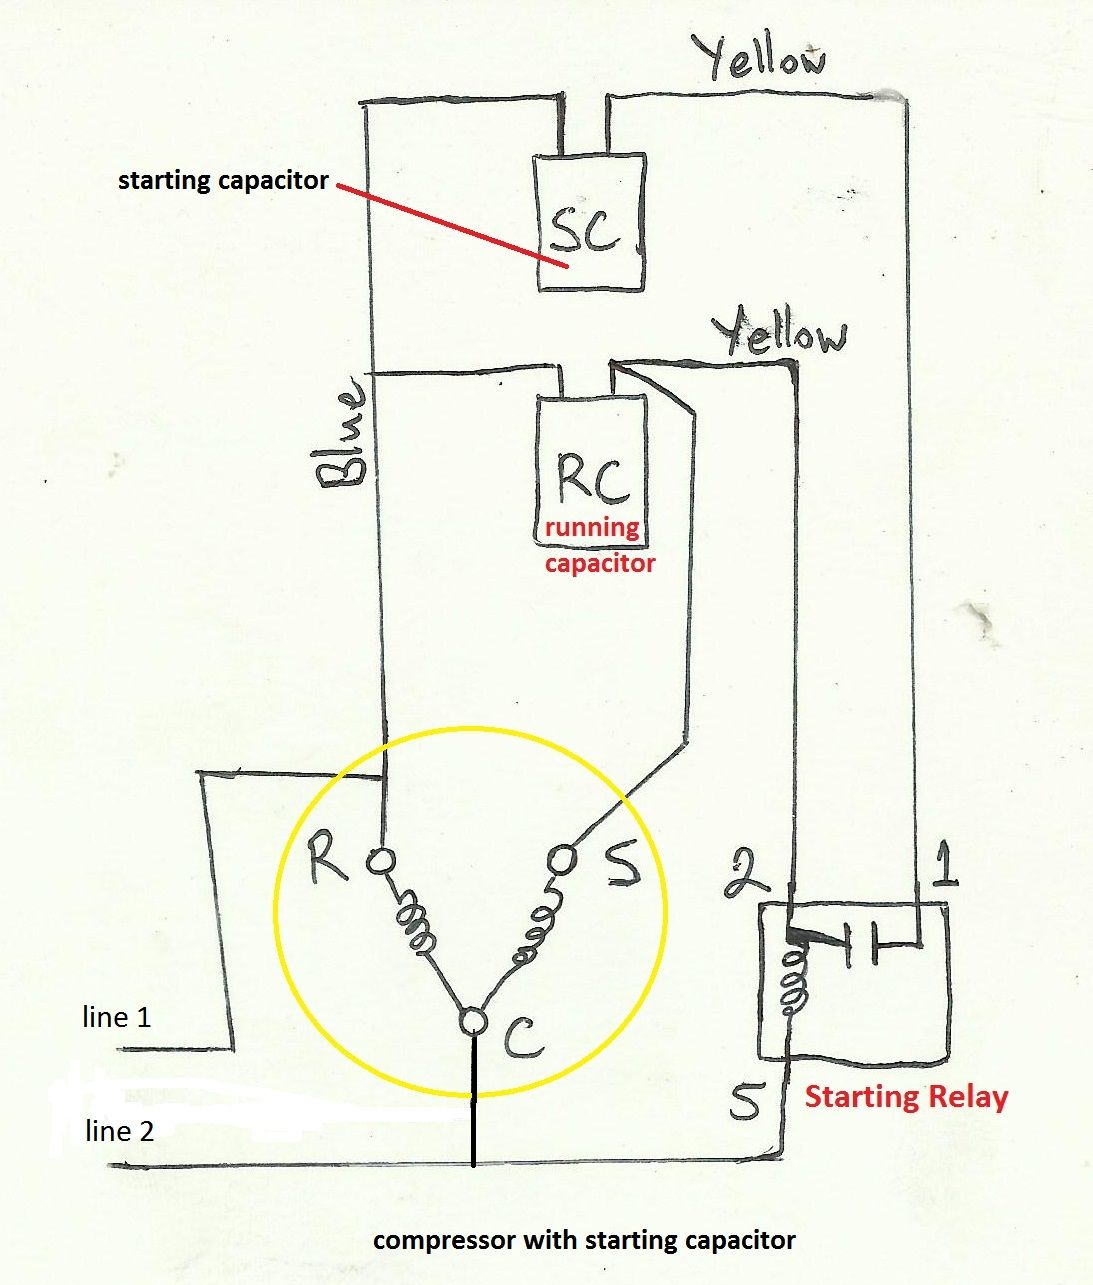 Air compressor capacitor wiring diagram before you call a ac repair air compressor capacitor wiring diagram before you call a ac repair man visit my blog for some tips on how to save thousands in ac repairs asfbconference2016 Images